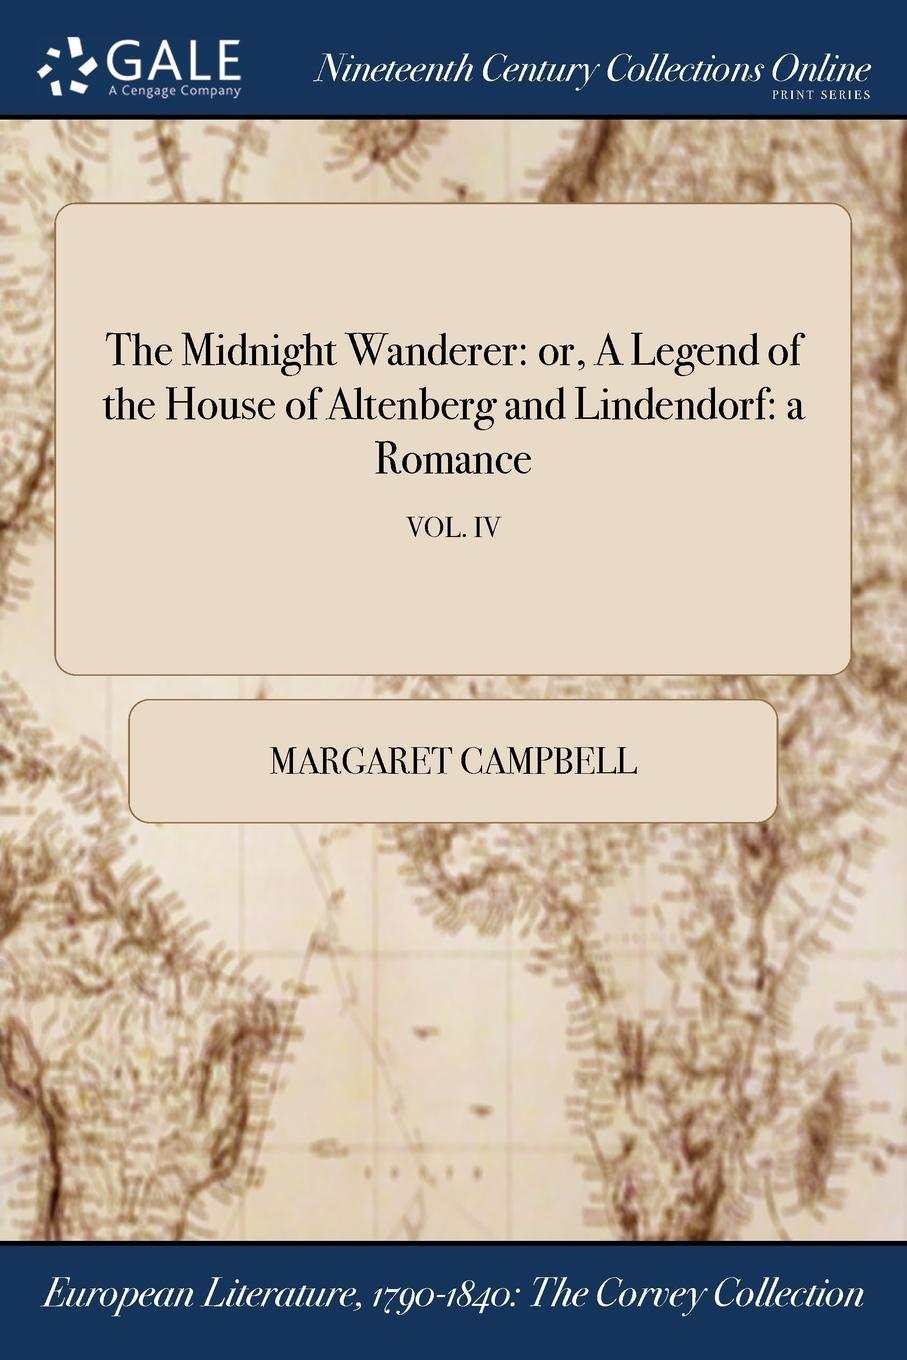 Margaret Campbell The Midnight Wanderer. or, A Legend of the House of Altenberg and Lindendorf: a Romance; VOL. IV